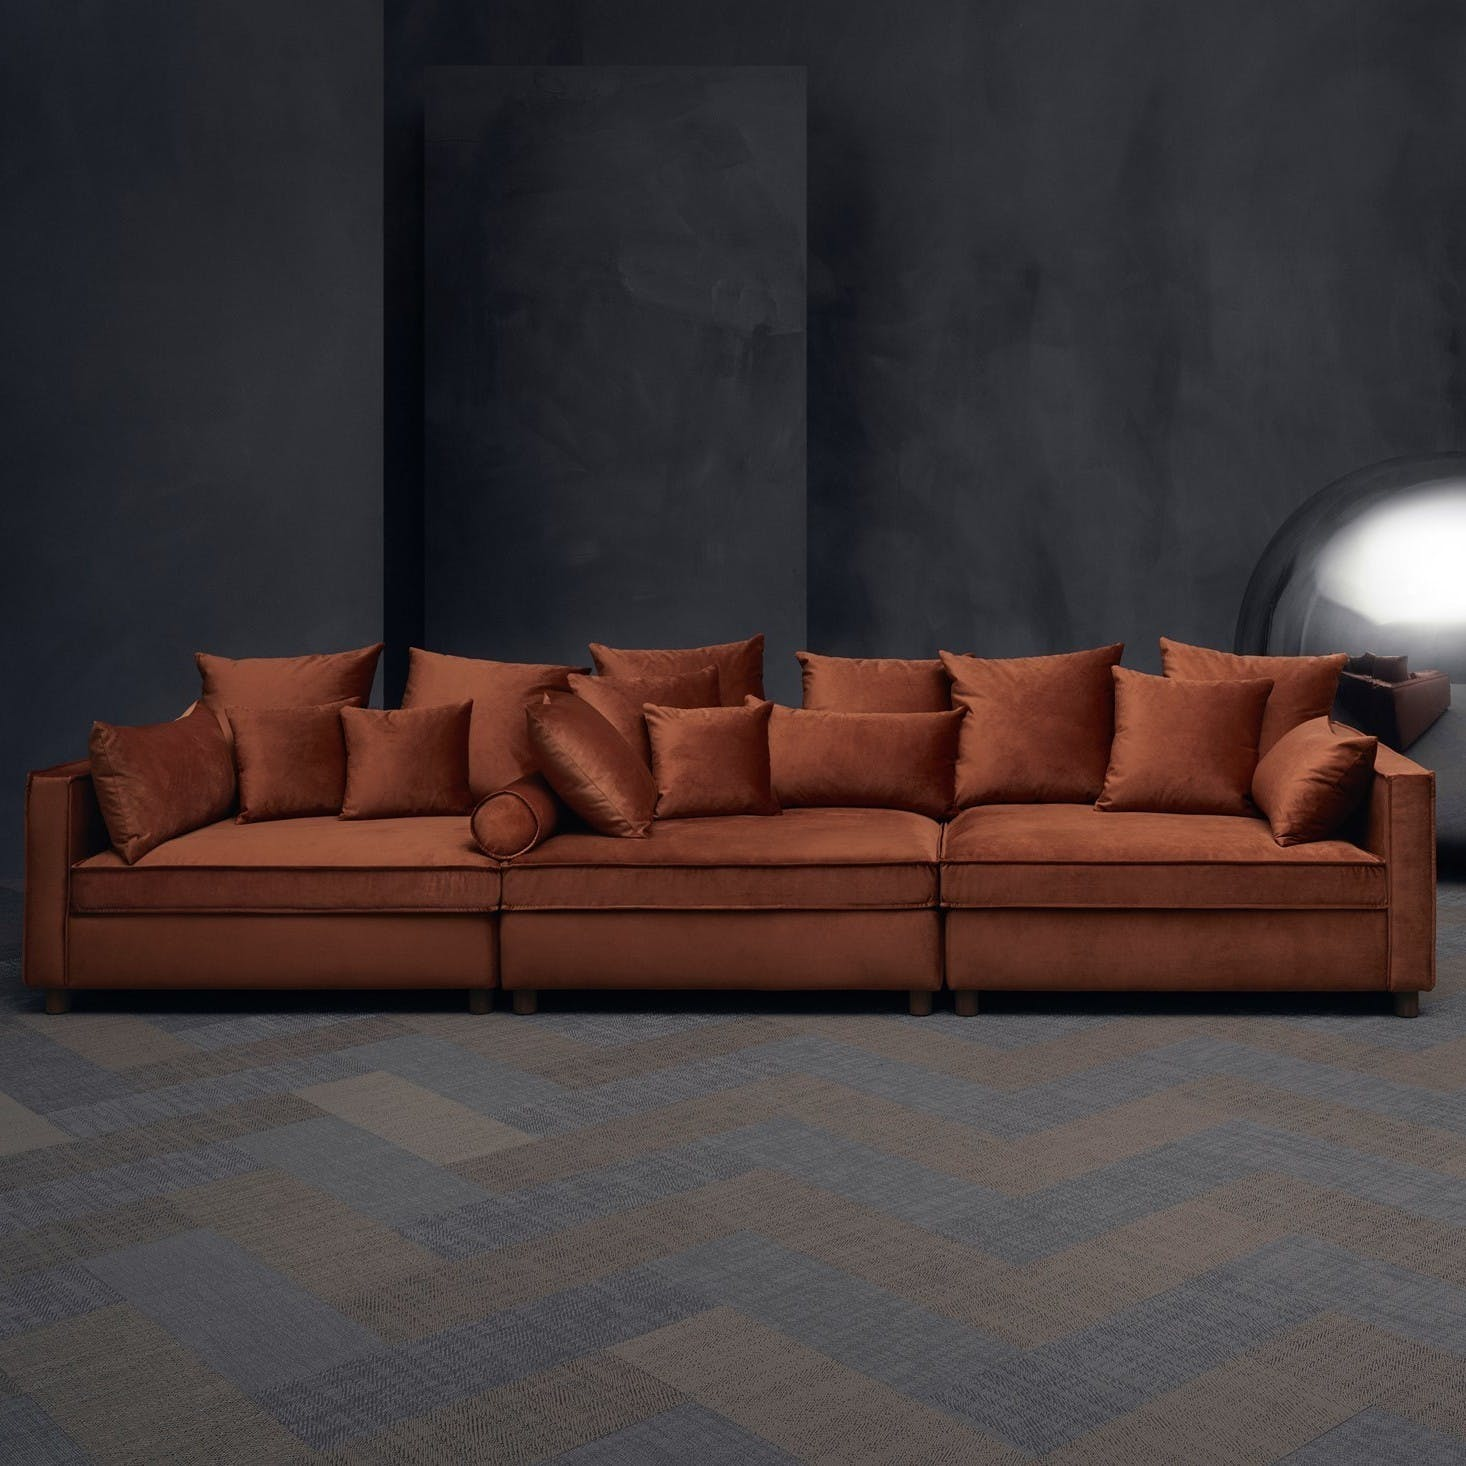 Bolia Orange Mr Big Sofa Haute Living